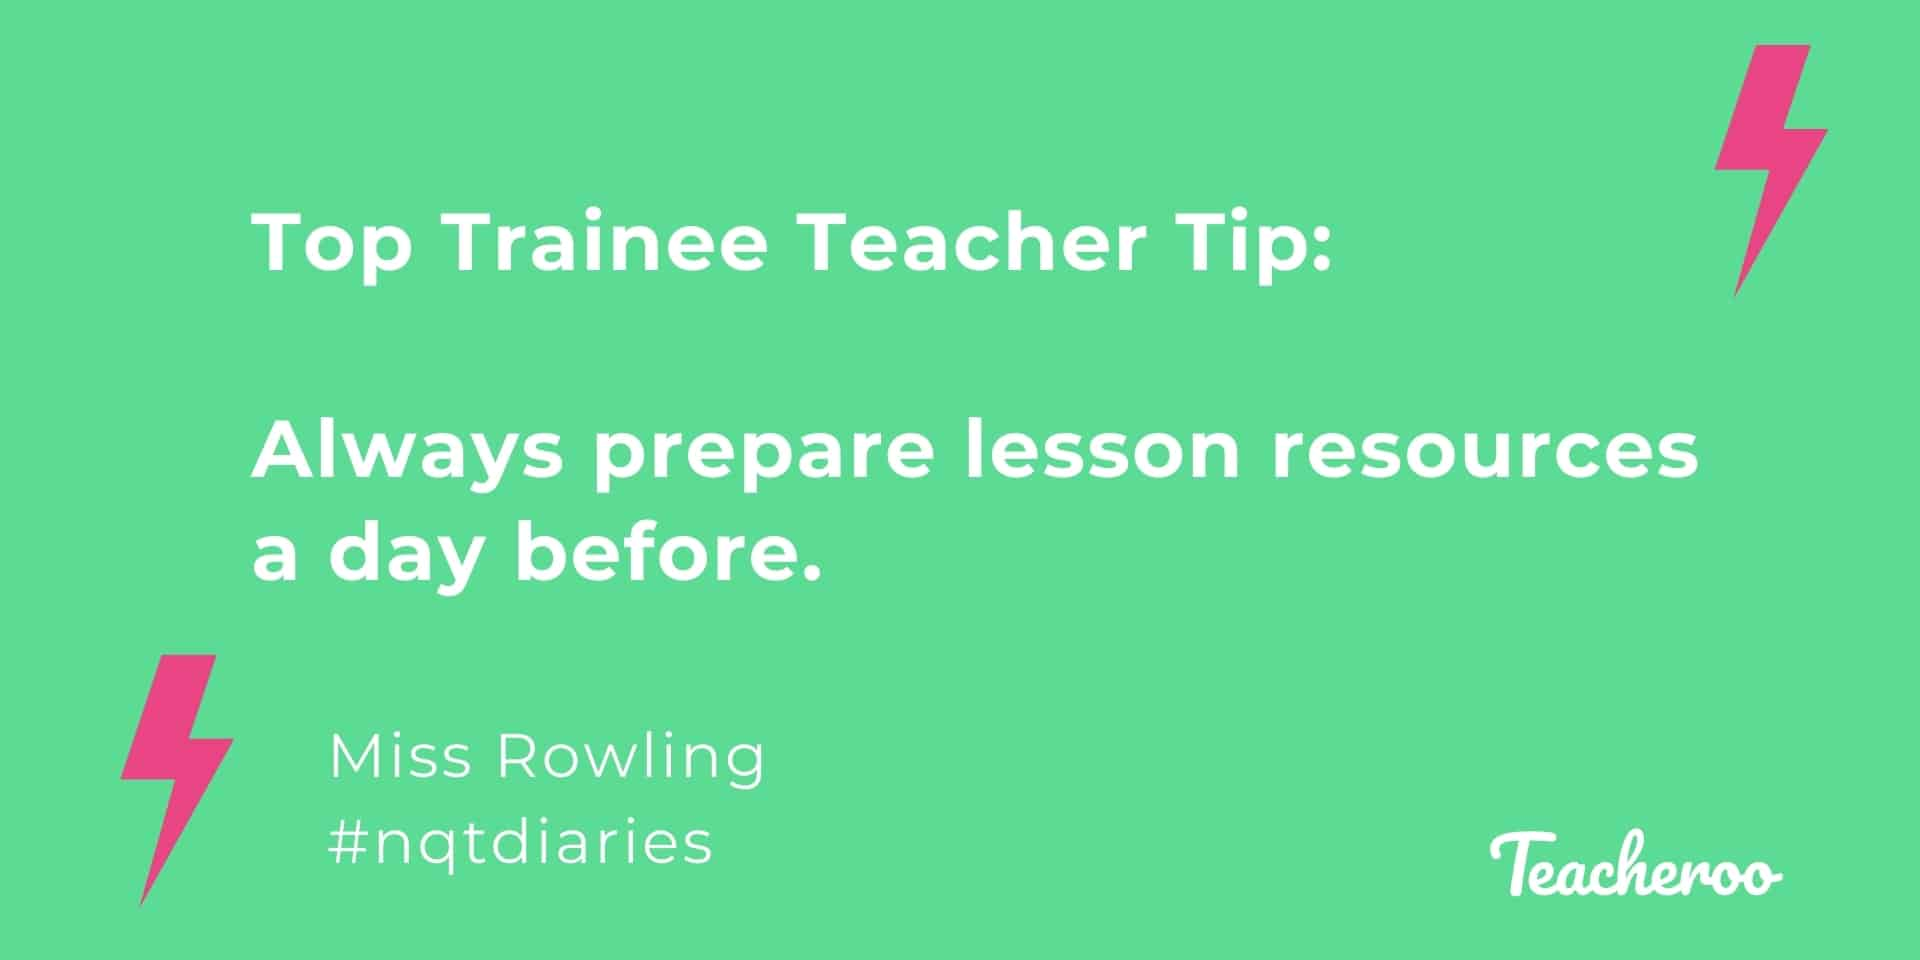 Miss Rowling shares her top trainee teacher tip in this quote graphic - always prep resources the day before a lesson